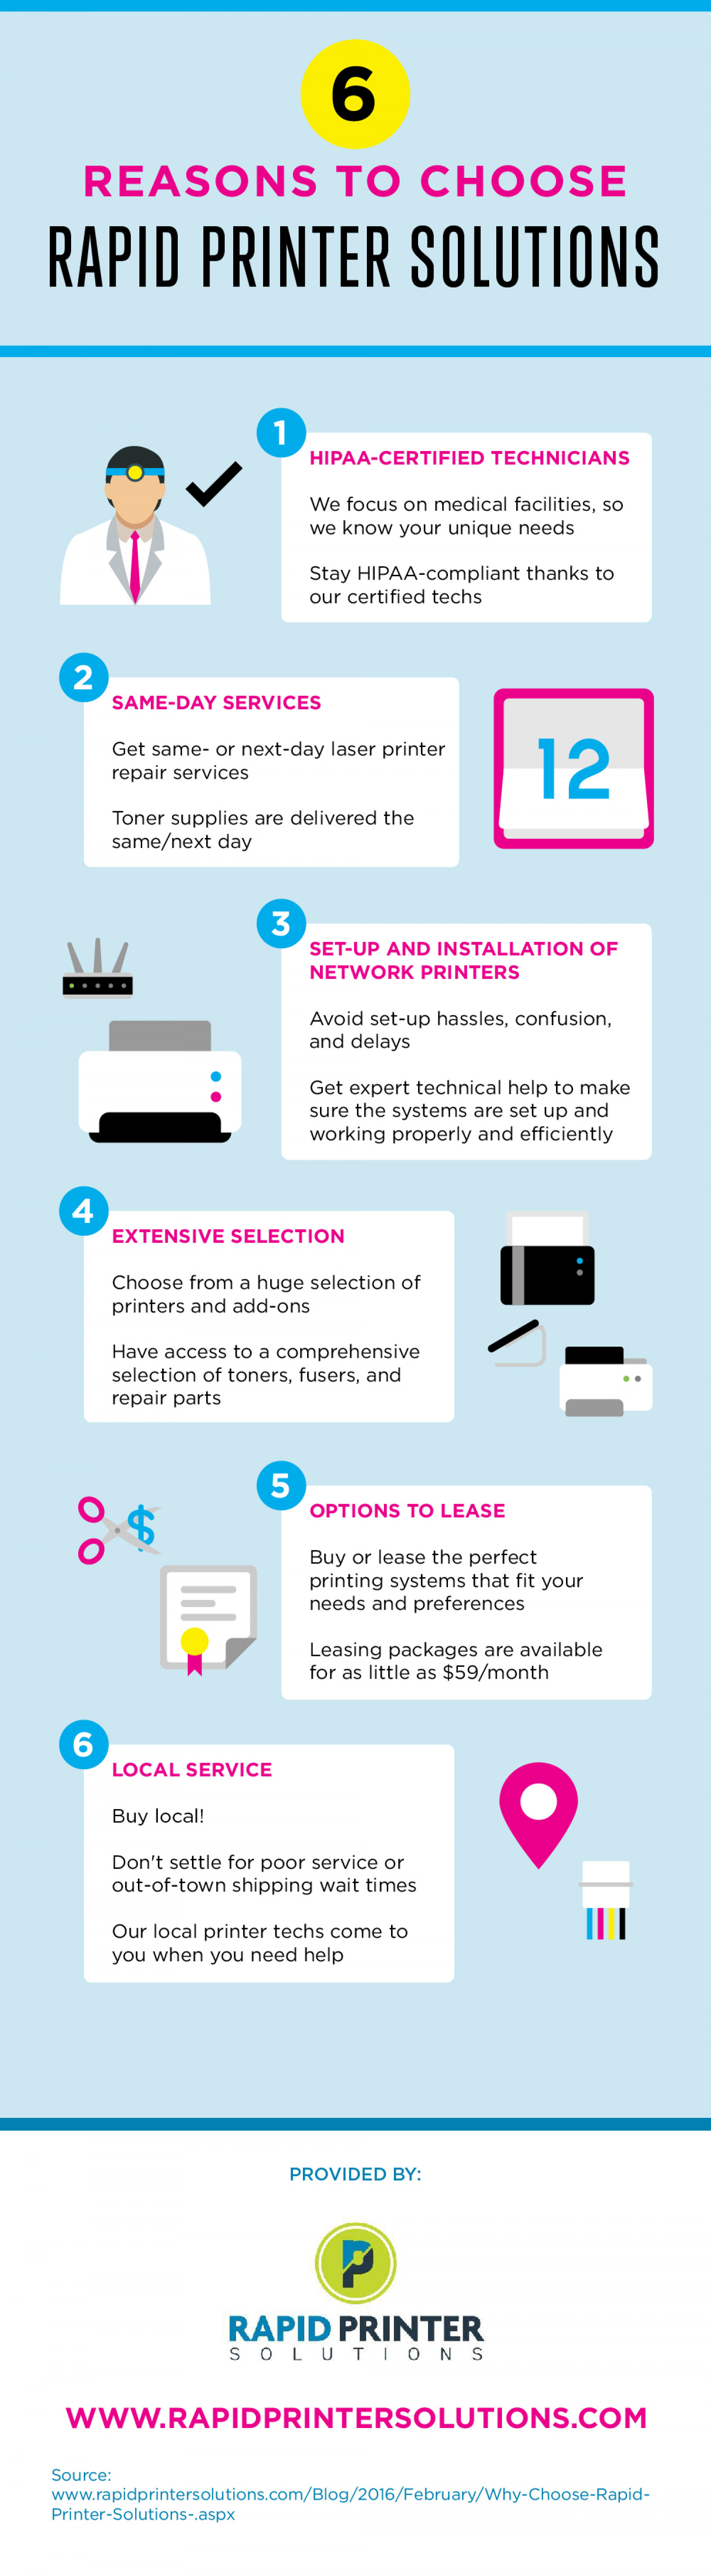 6 Reasons to Choose Rapid Printer Solutions Infographic